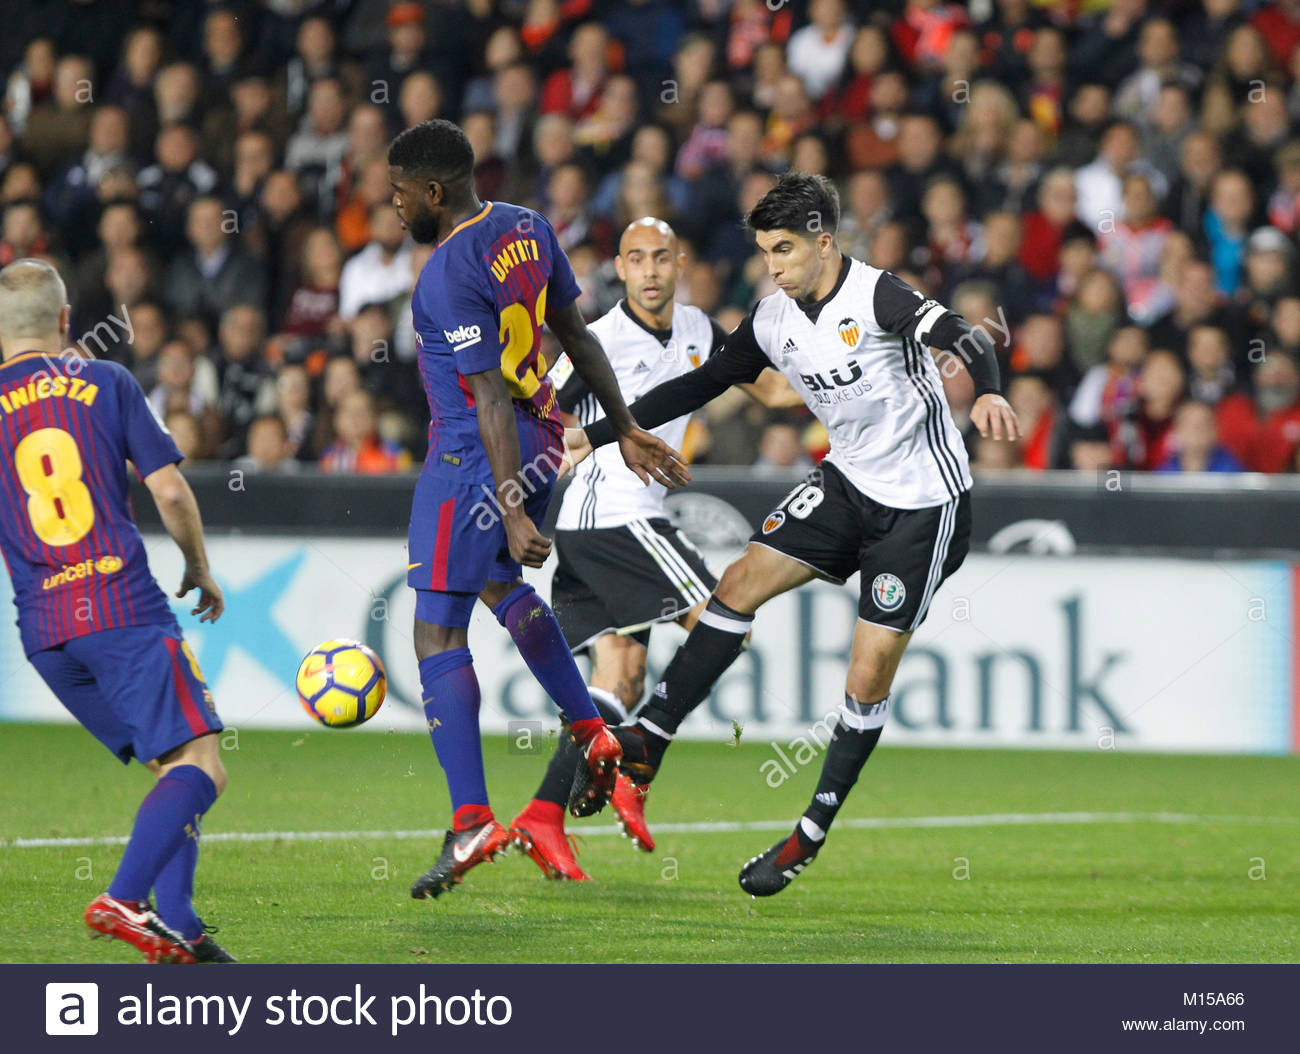 Carlos Soler of valencia and Umtiti of barcelona during a match in Mestalla stadium in valencia, Spain Stock Photo